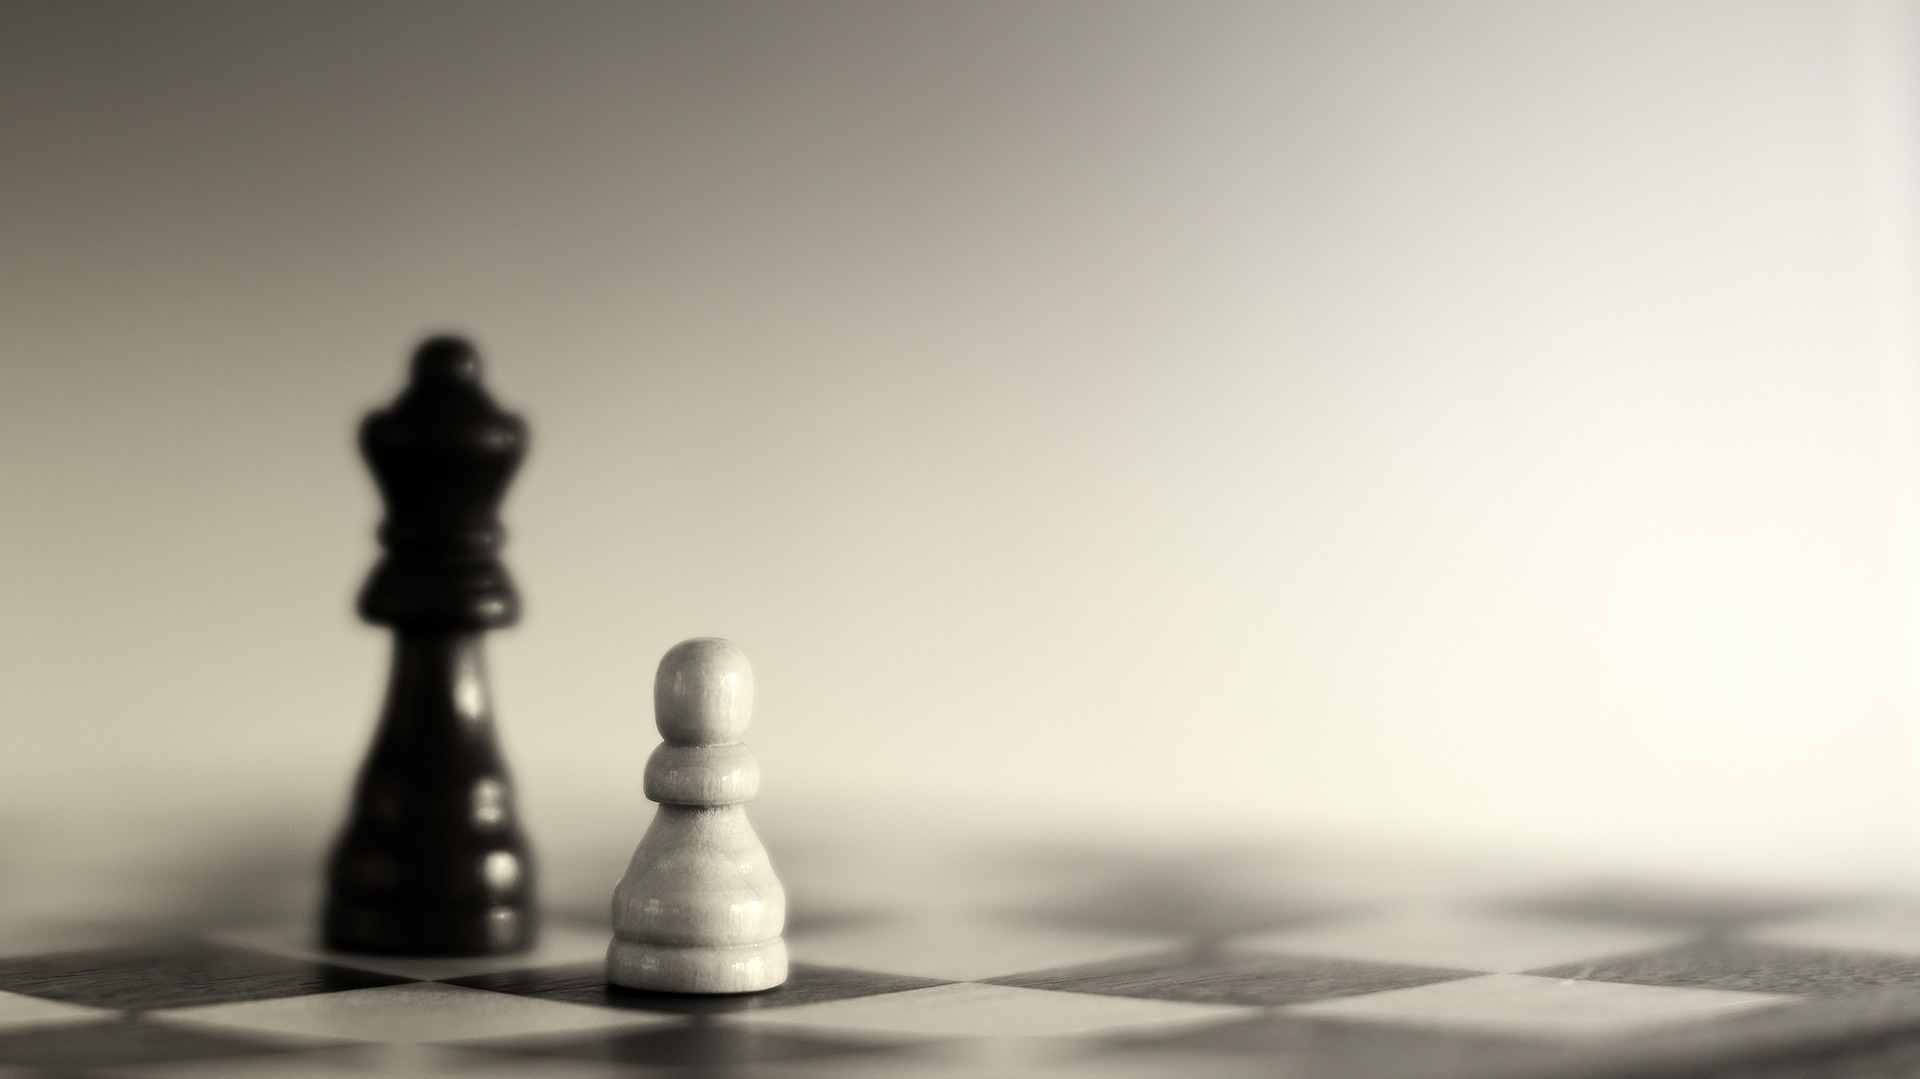 A chess board with 2 chess pieces - a black bishop and a white pawn